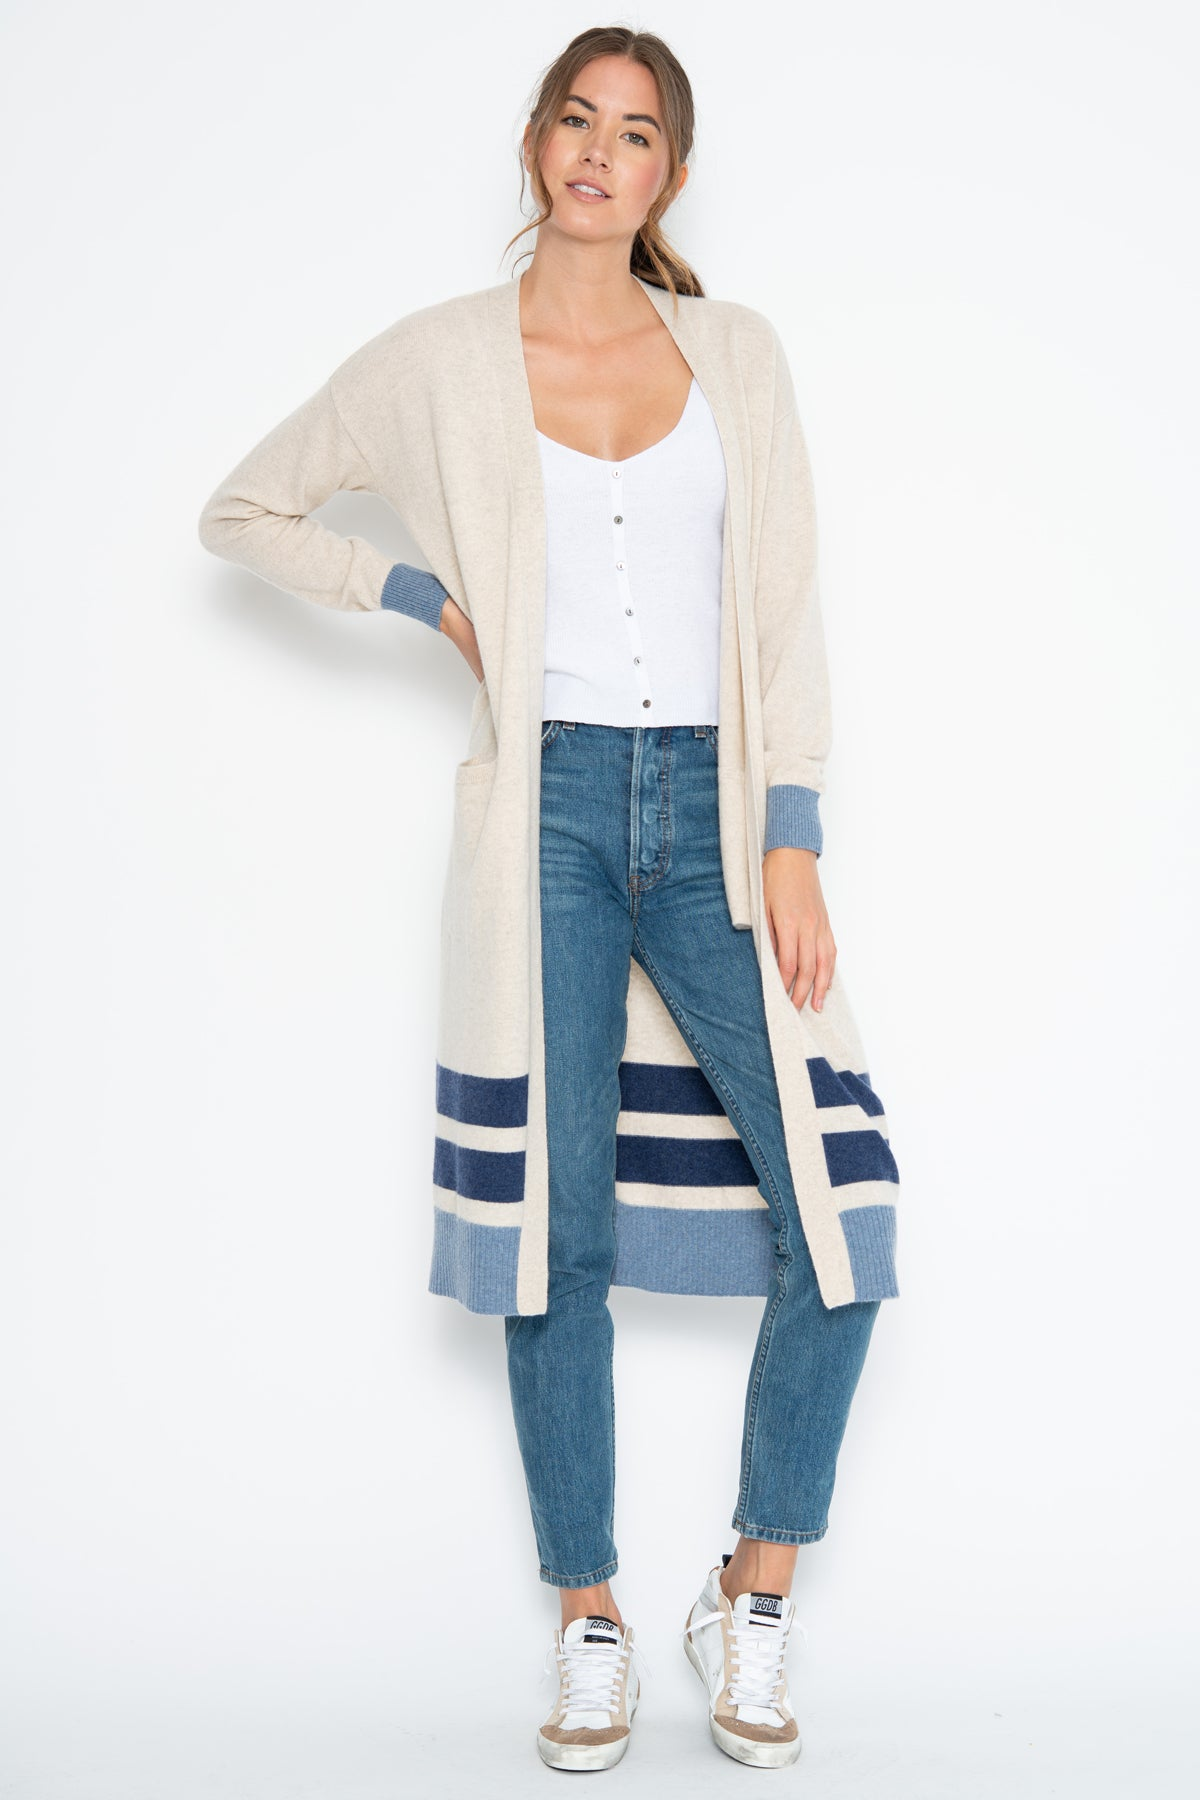 Collins Cashmere Duster - Latte/Denim Combo